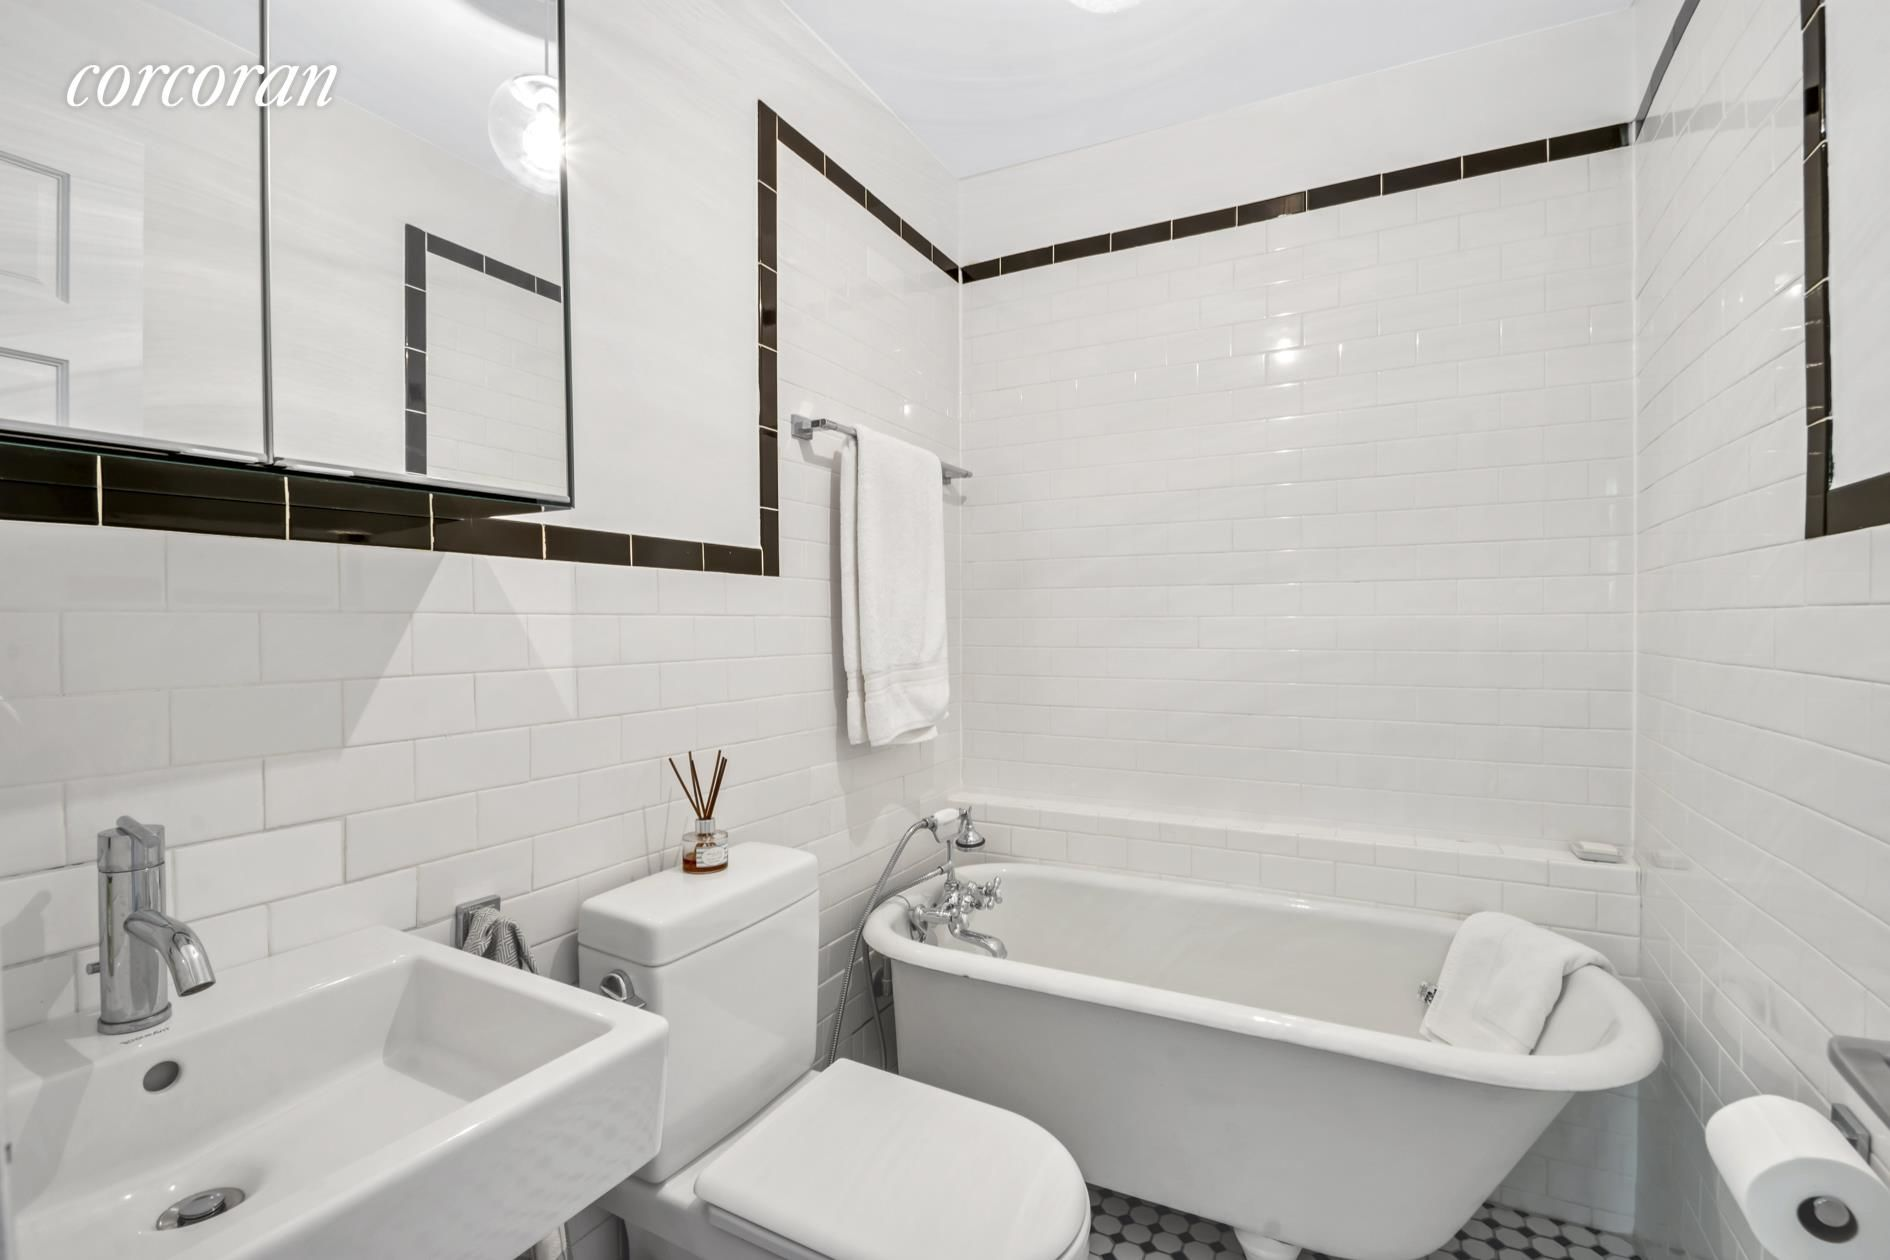 561 Union St Photo 2 - NYC-Real-Estate-668587